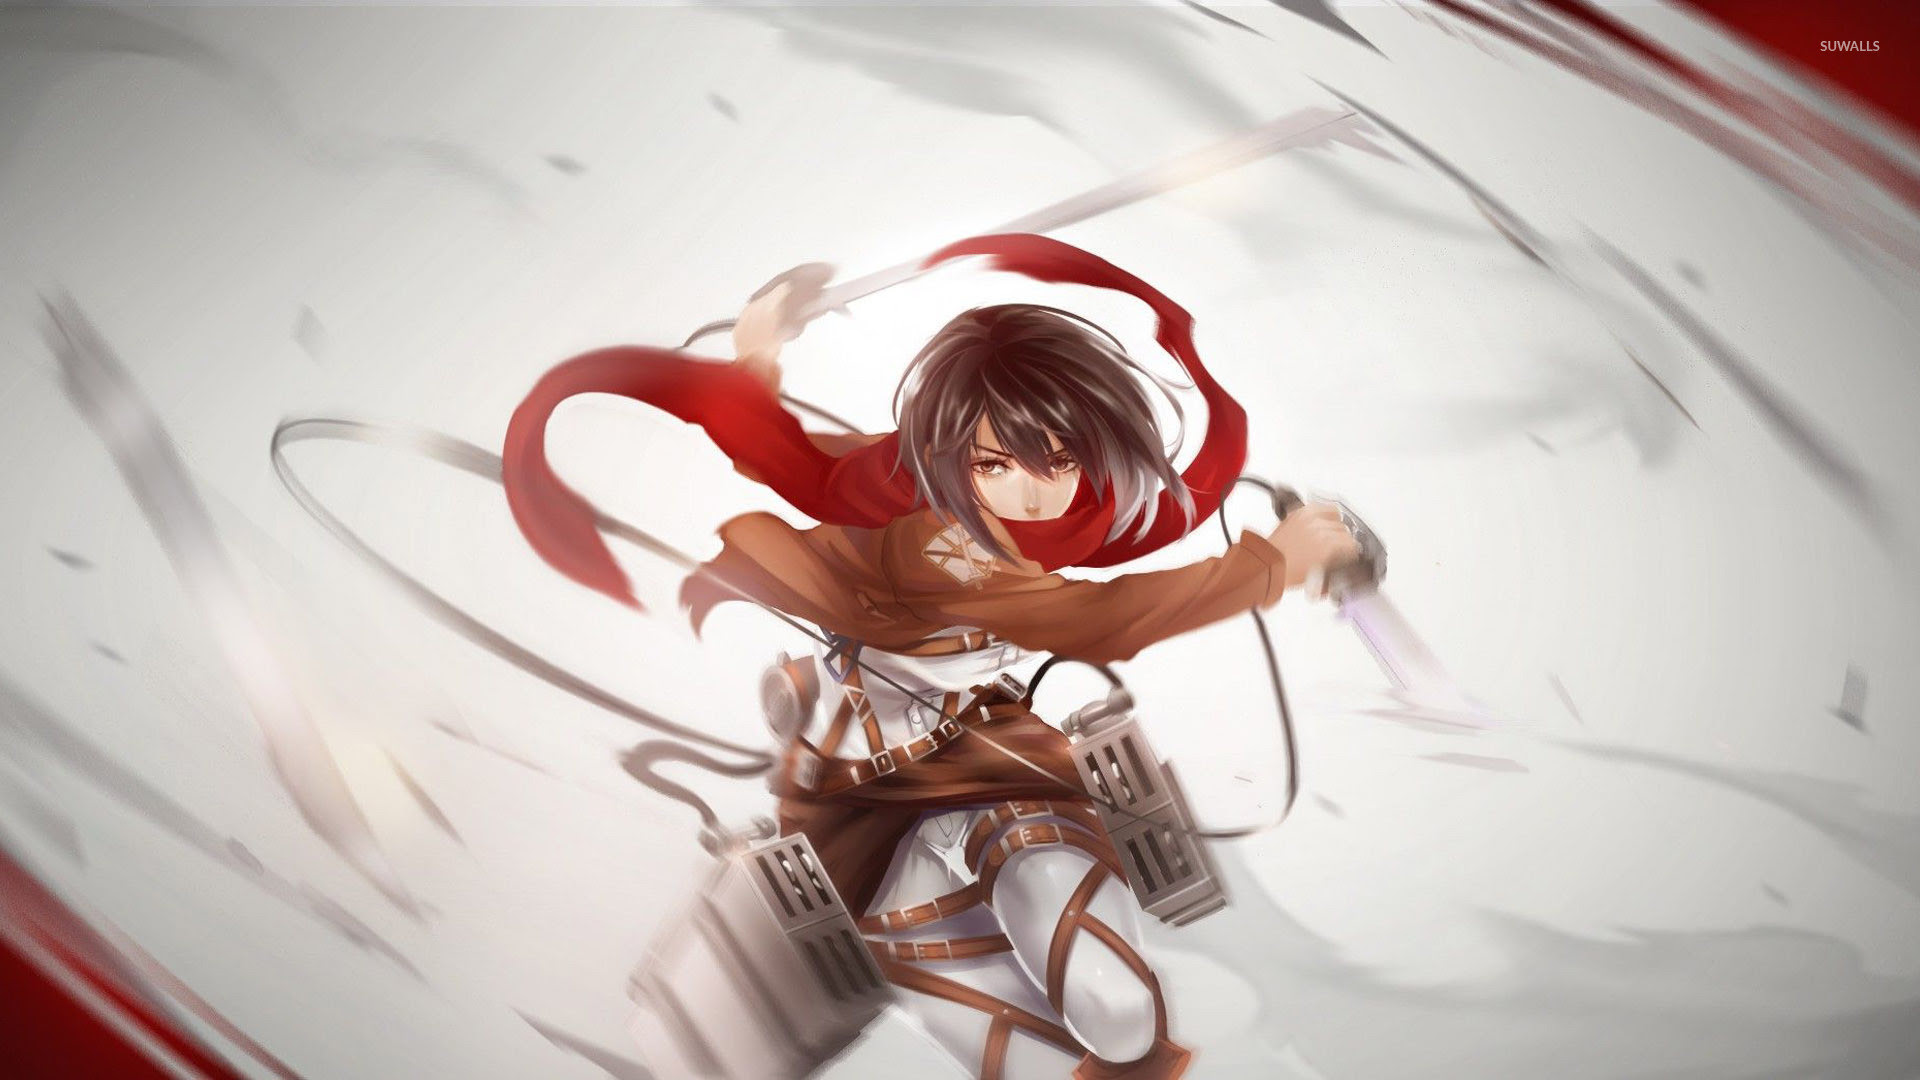 Attack On Titan Mikasa Ackerman Wallpapers 82 Images